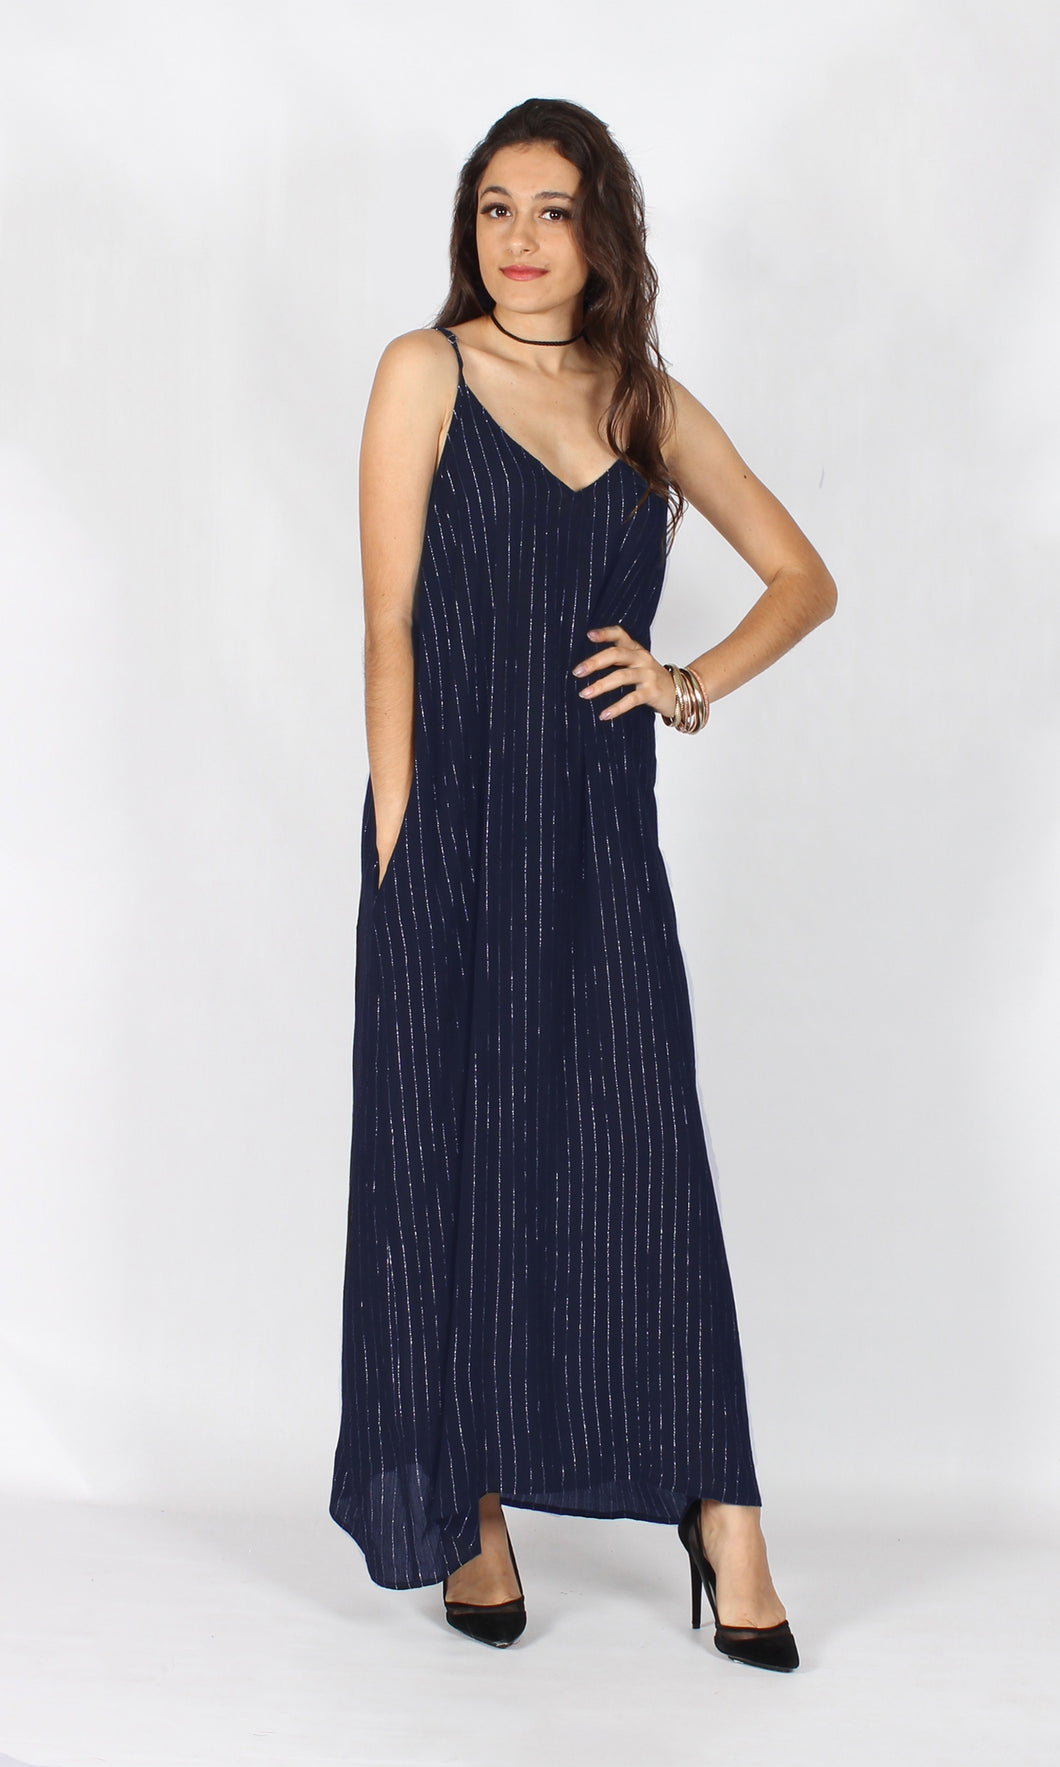 YS1788SS LUREX NAVY MAXI DRESS (Pack)